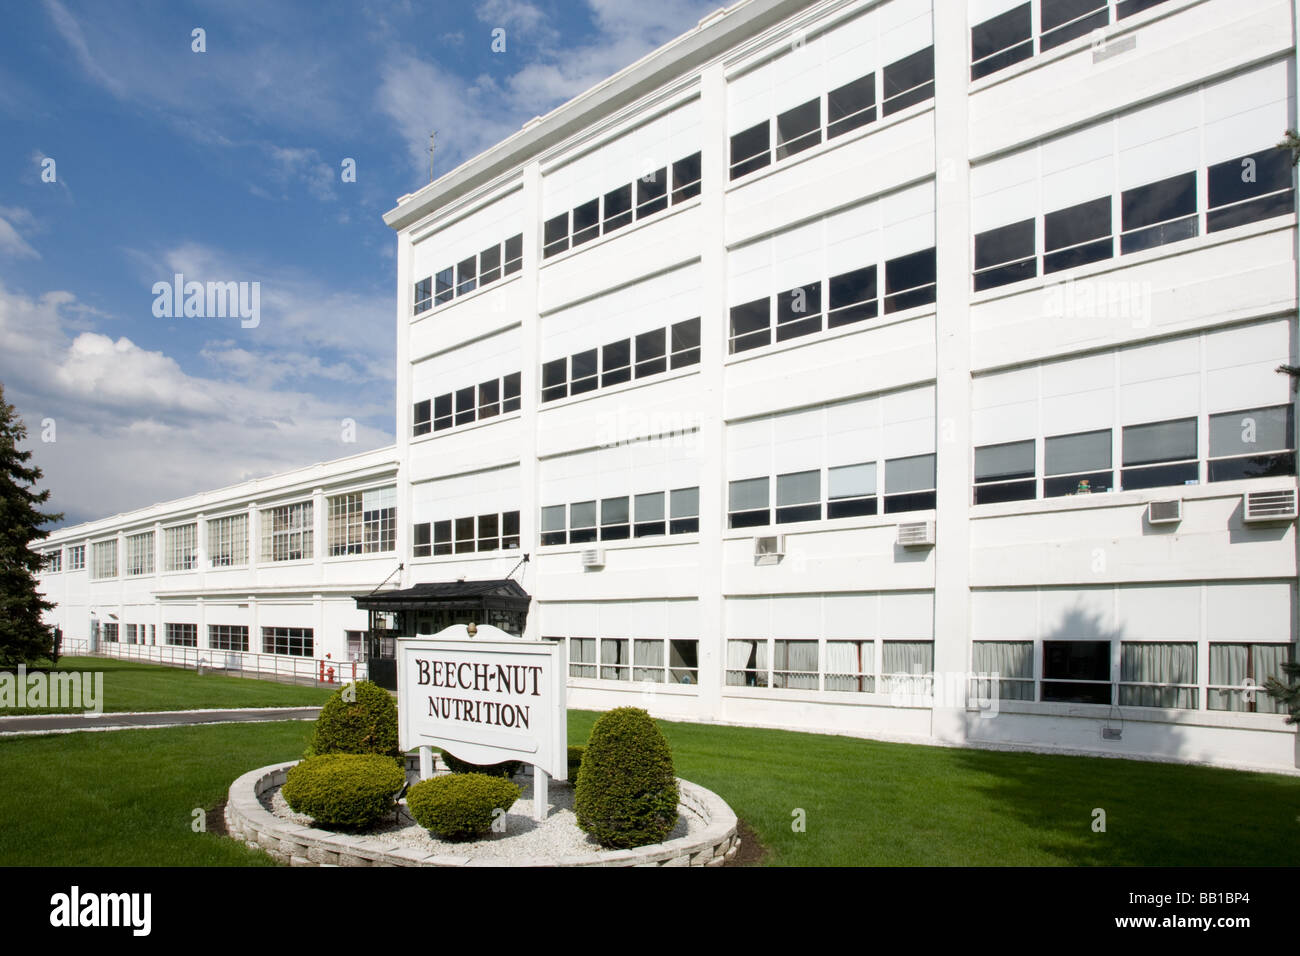 Beechnut Corporation started here Canajoharie New York State Montgomery County Mohawk Valley - Stock Image